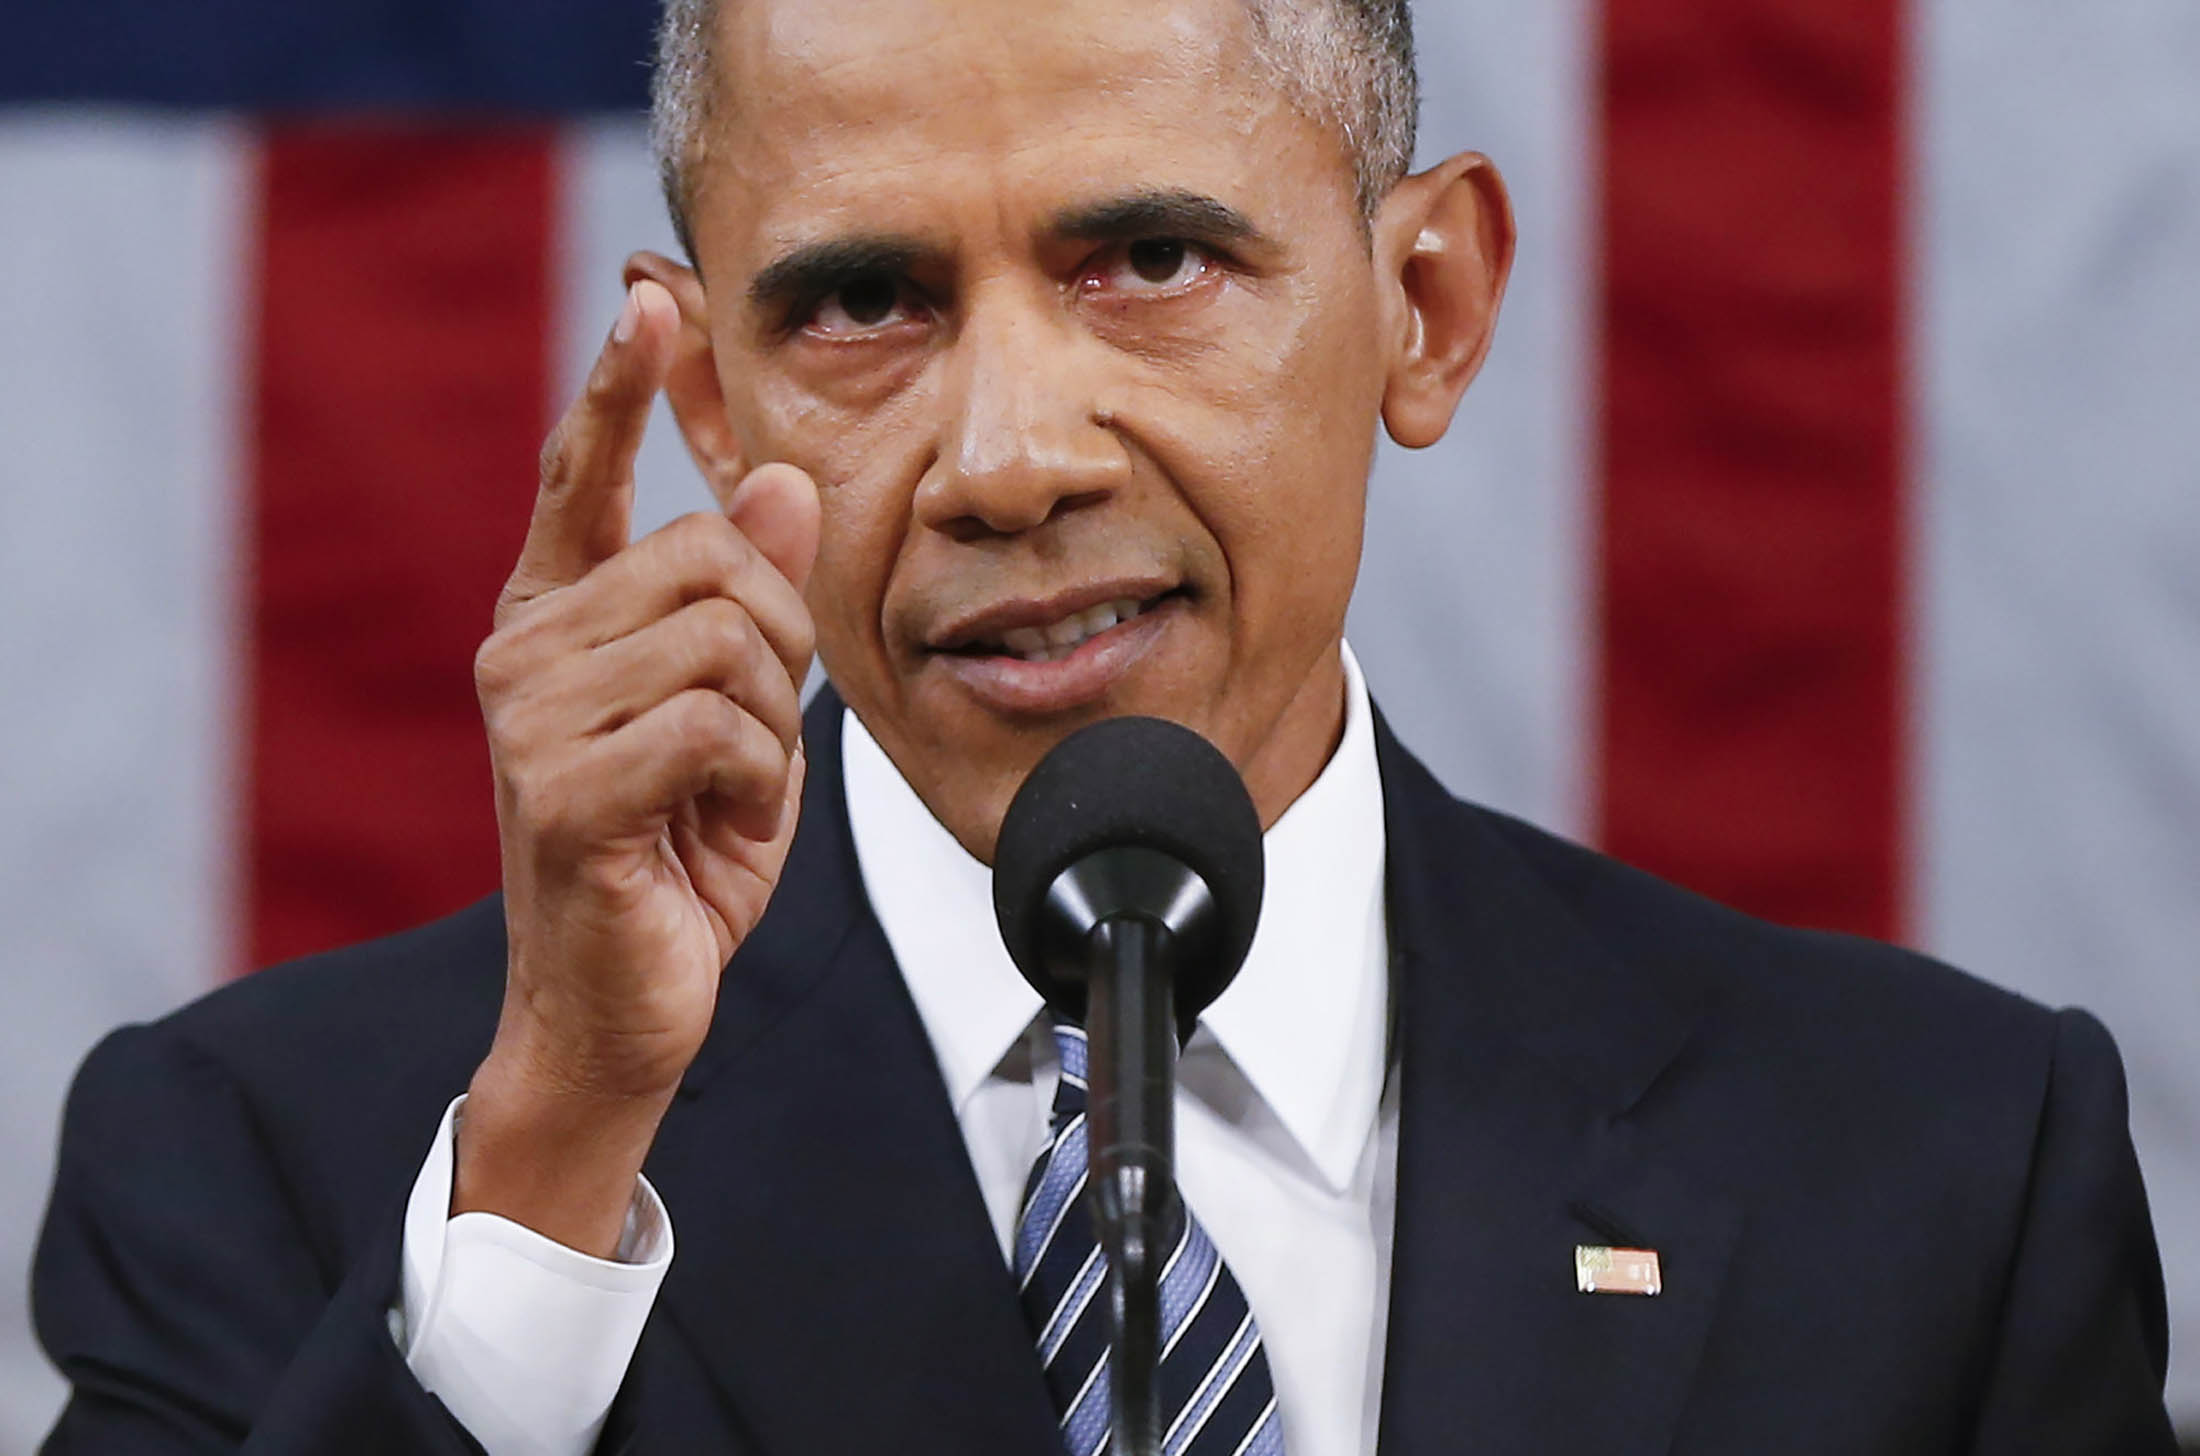 Obama Said Poised to Block Chinese Takeover of Germany's Aixtron